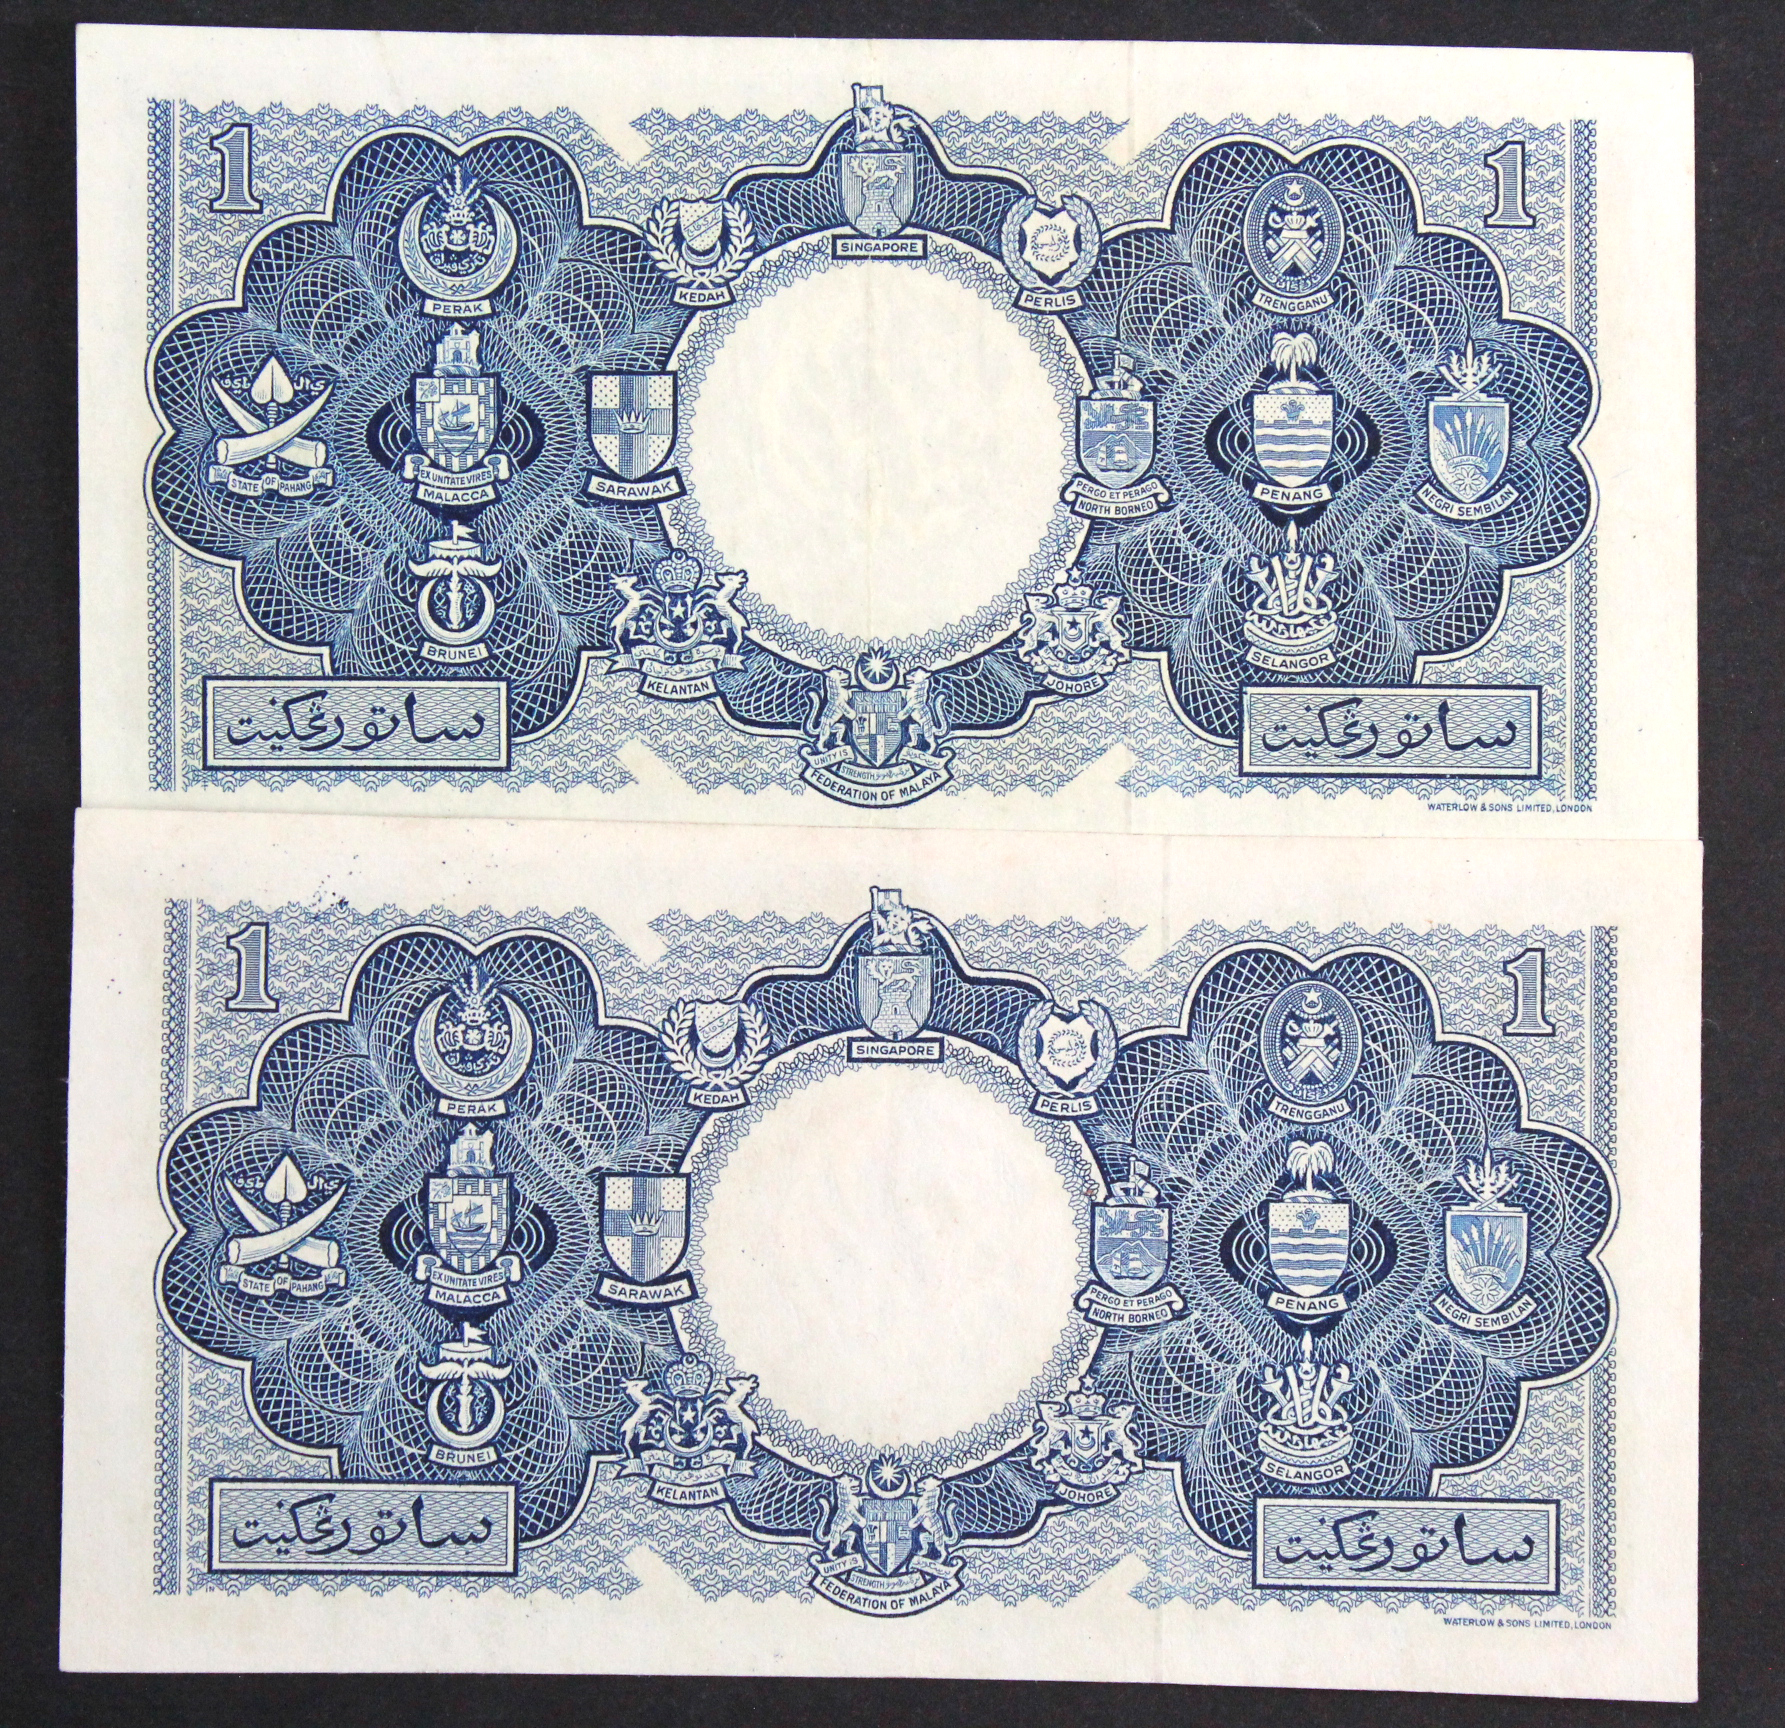 Malaya & British Borneo 1 Dollar (2) dated 21st March 1953, serial A/70 501125 & A/93 987490 (TBB - Image 2 of 2